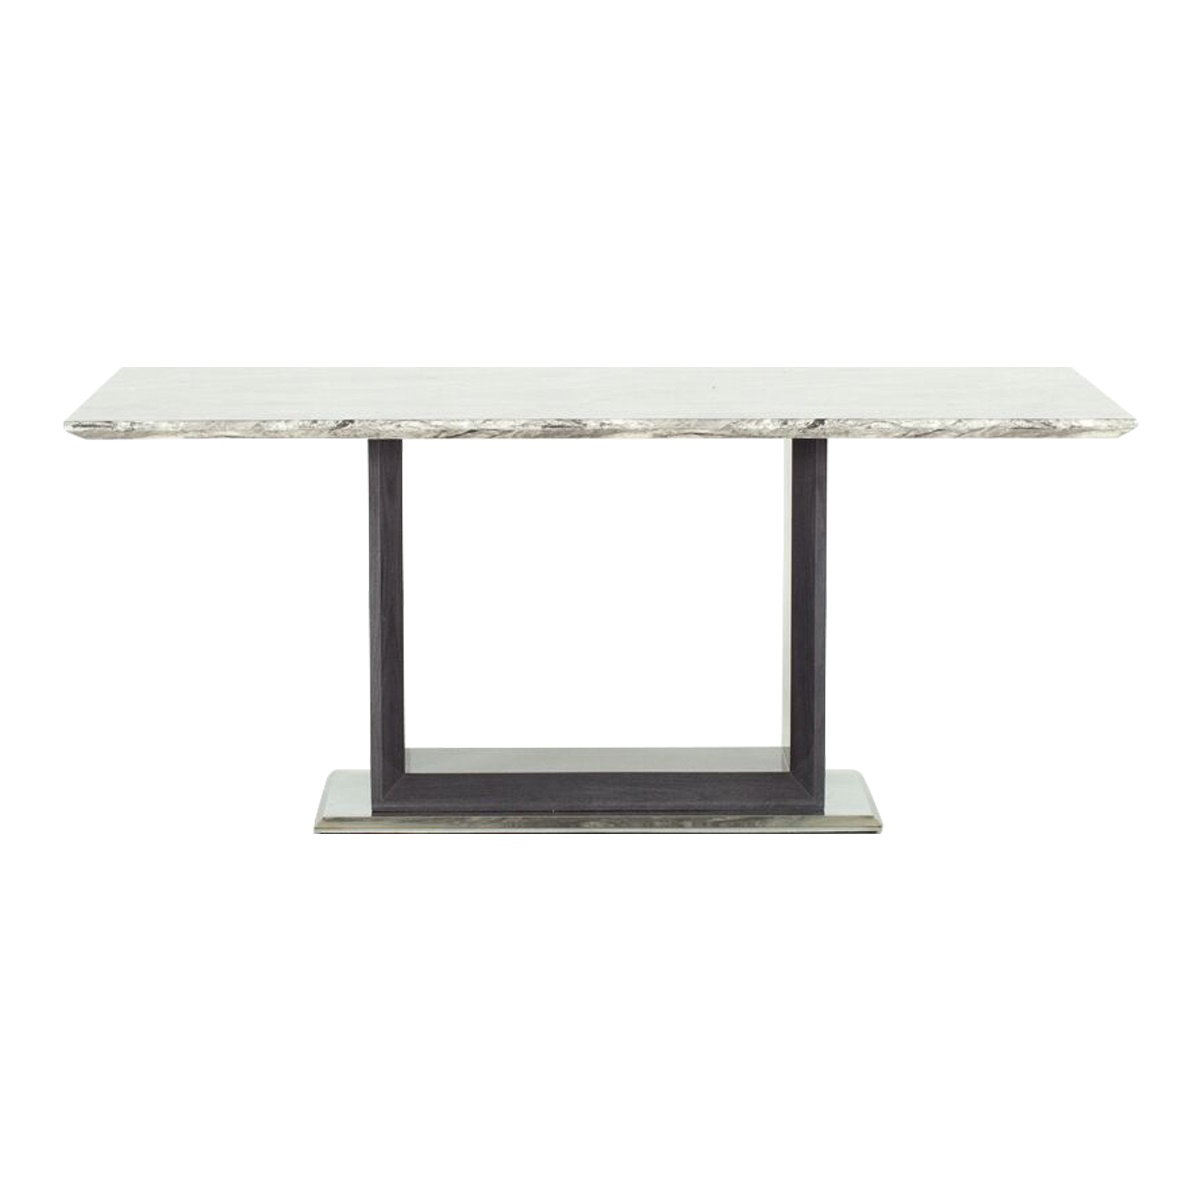 Marble dining tables high quality dining furniture fads for 10 seater marble dining table